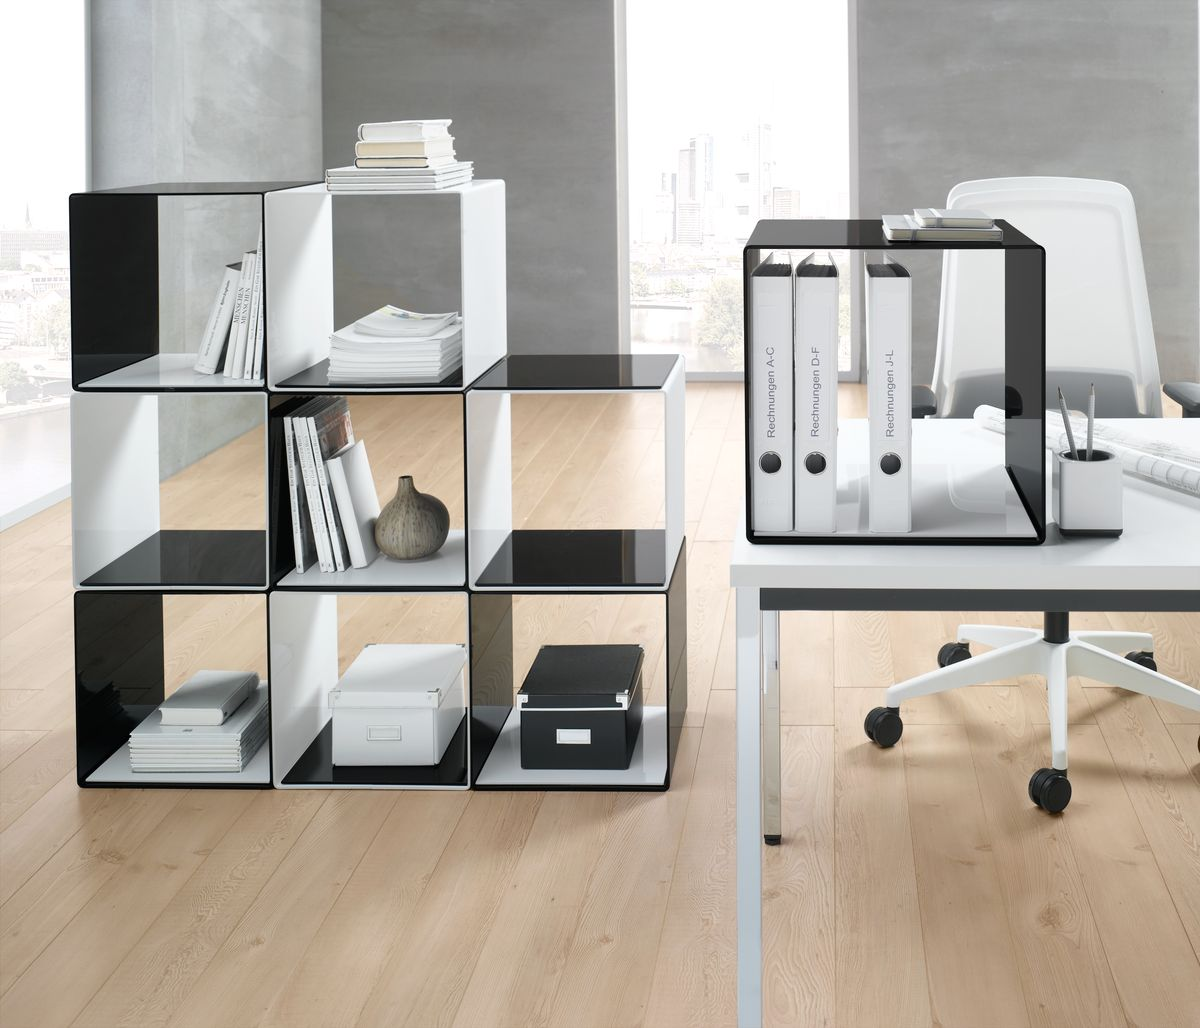 plexiglas einlagen g nstig kaufen sch fer shop. Black Bedroom Furniture Sets. Home Design Ideas